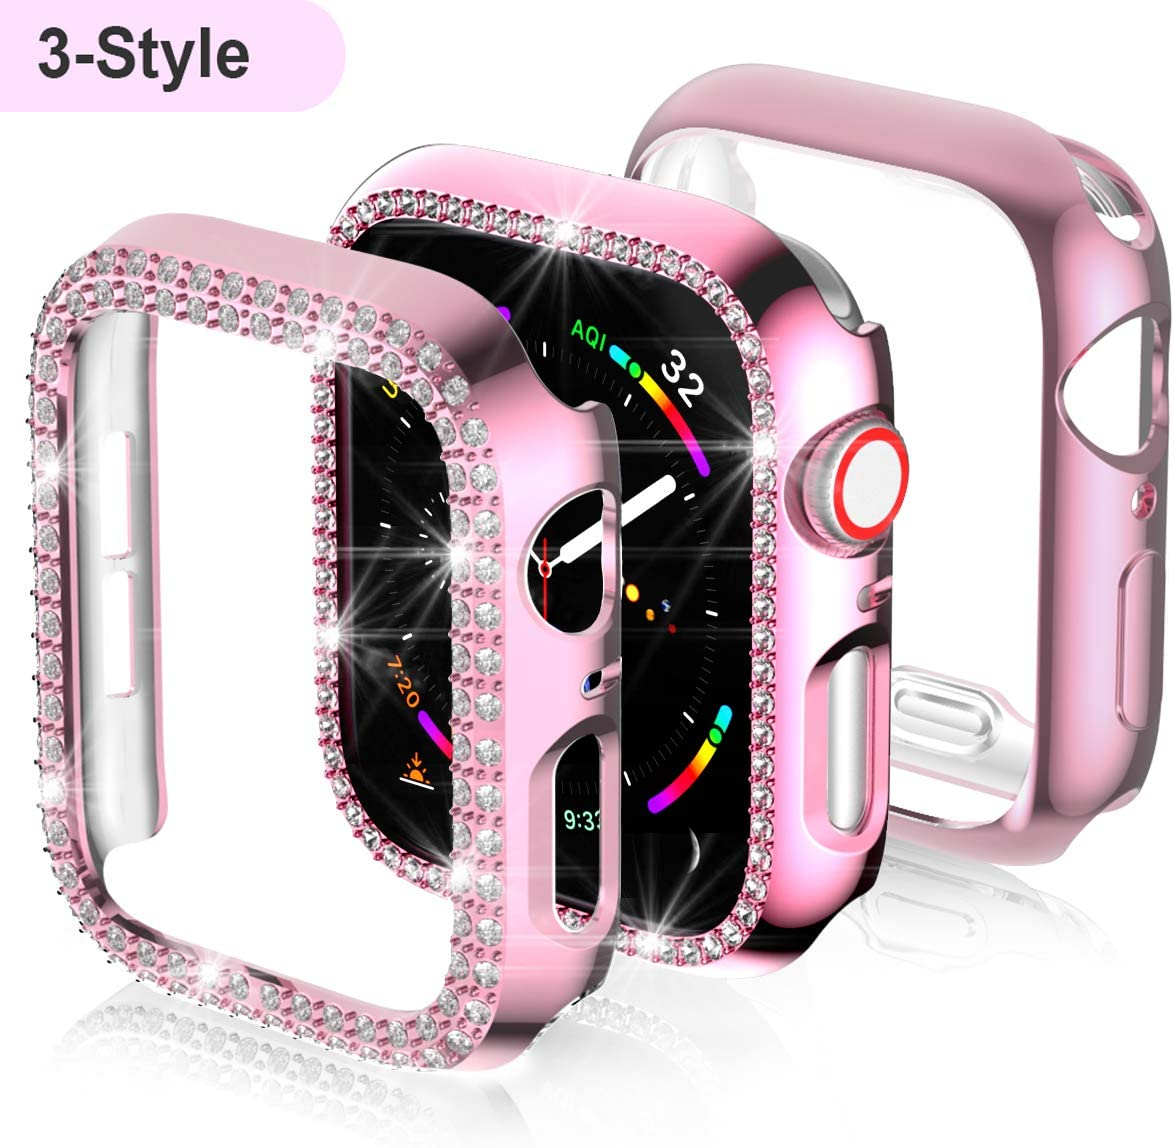 3-Pack Apple Watch 38mm Screen Protector Case,JZK Bling PC Diamond Case Bumper Shell Frame & Soft Plated TPU Protective Case Full Cover for iWatch Series1/2/3 38mm Nike+, Edition Accessories,Pink